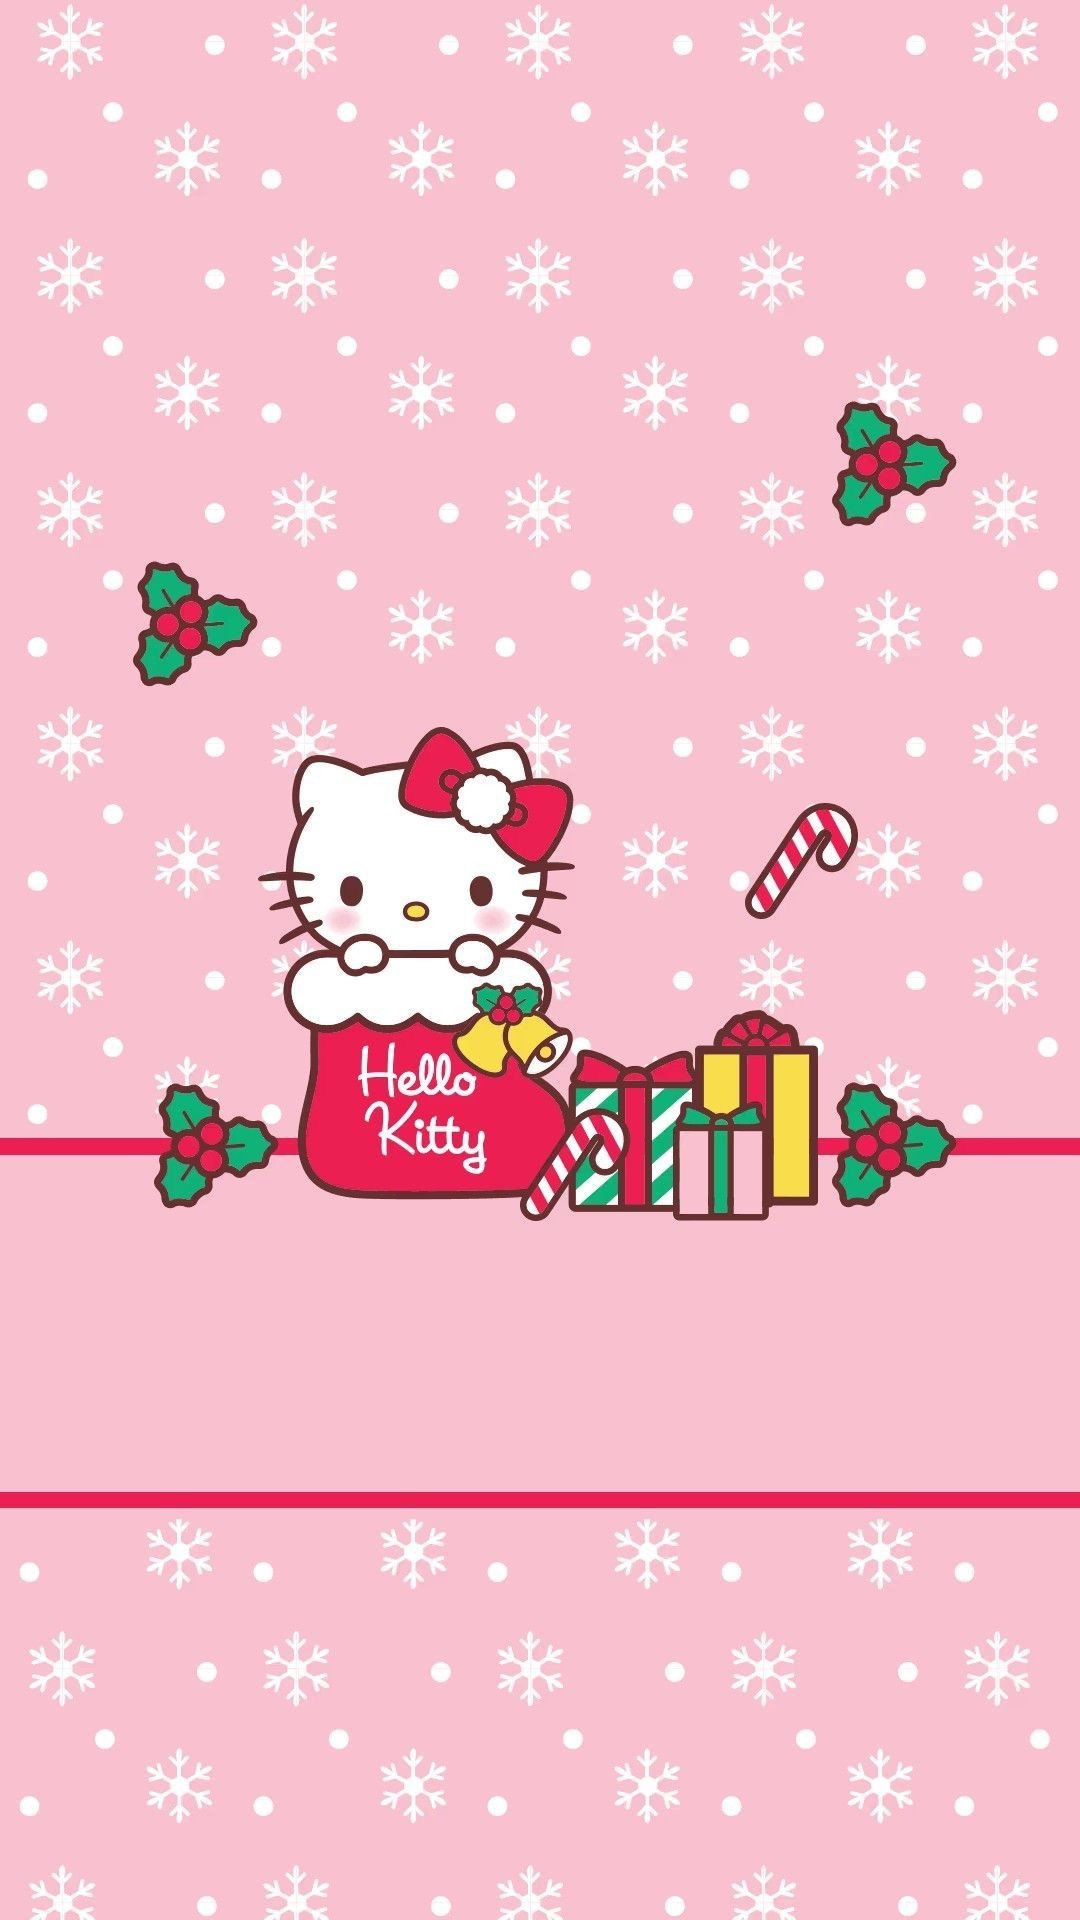 Hello Kitty Merry Christmas Wallpaper (65+ images)